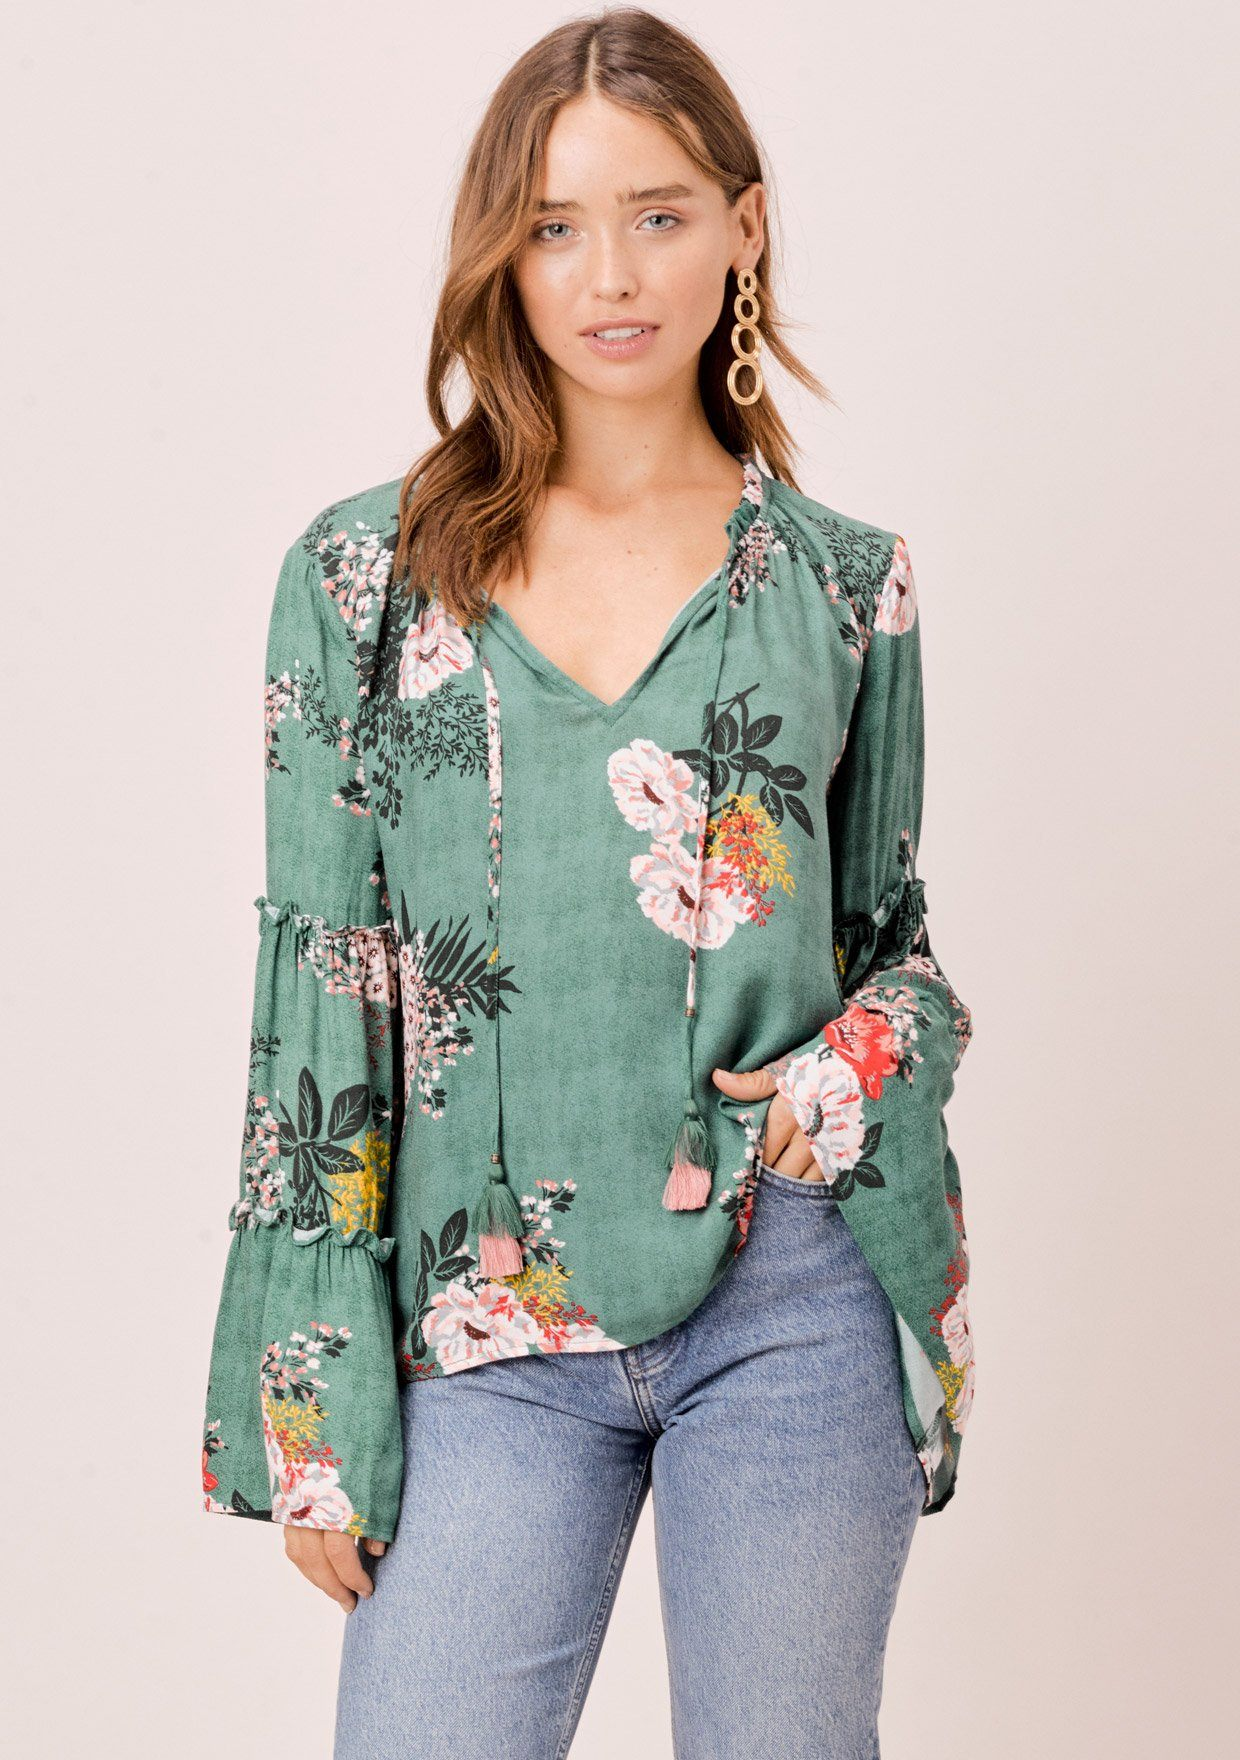 [Color: Sage] Lovestitch sage green Floral printed, bell sleeve, bohemian top with tie neck and ruffle details.